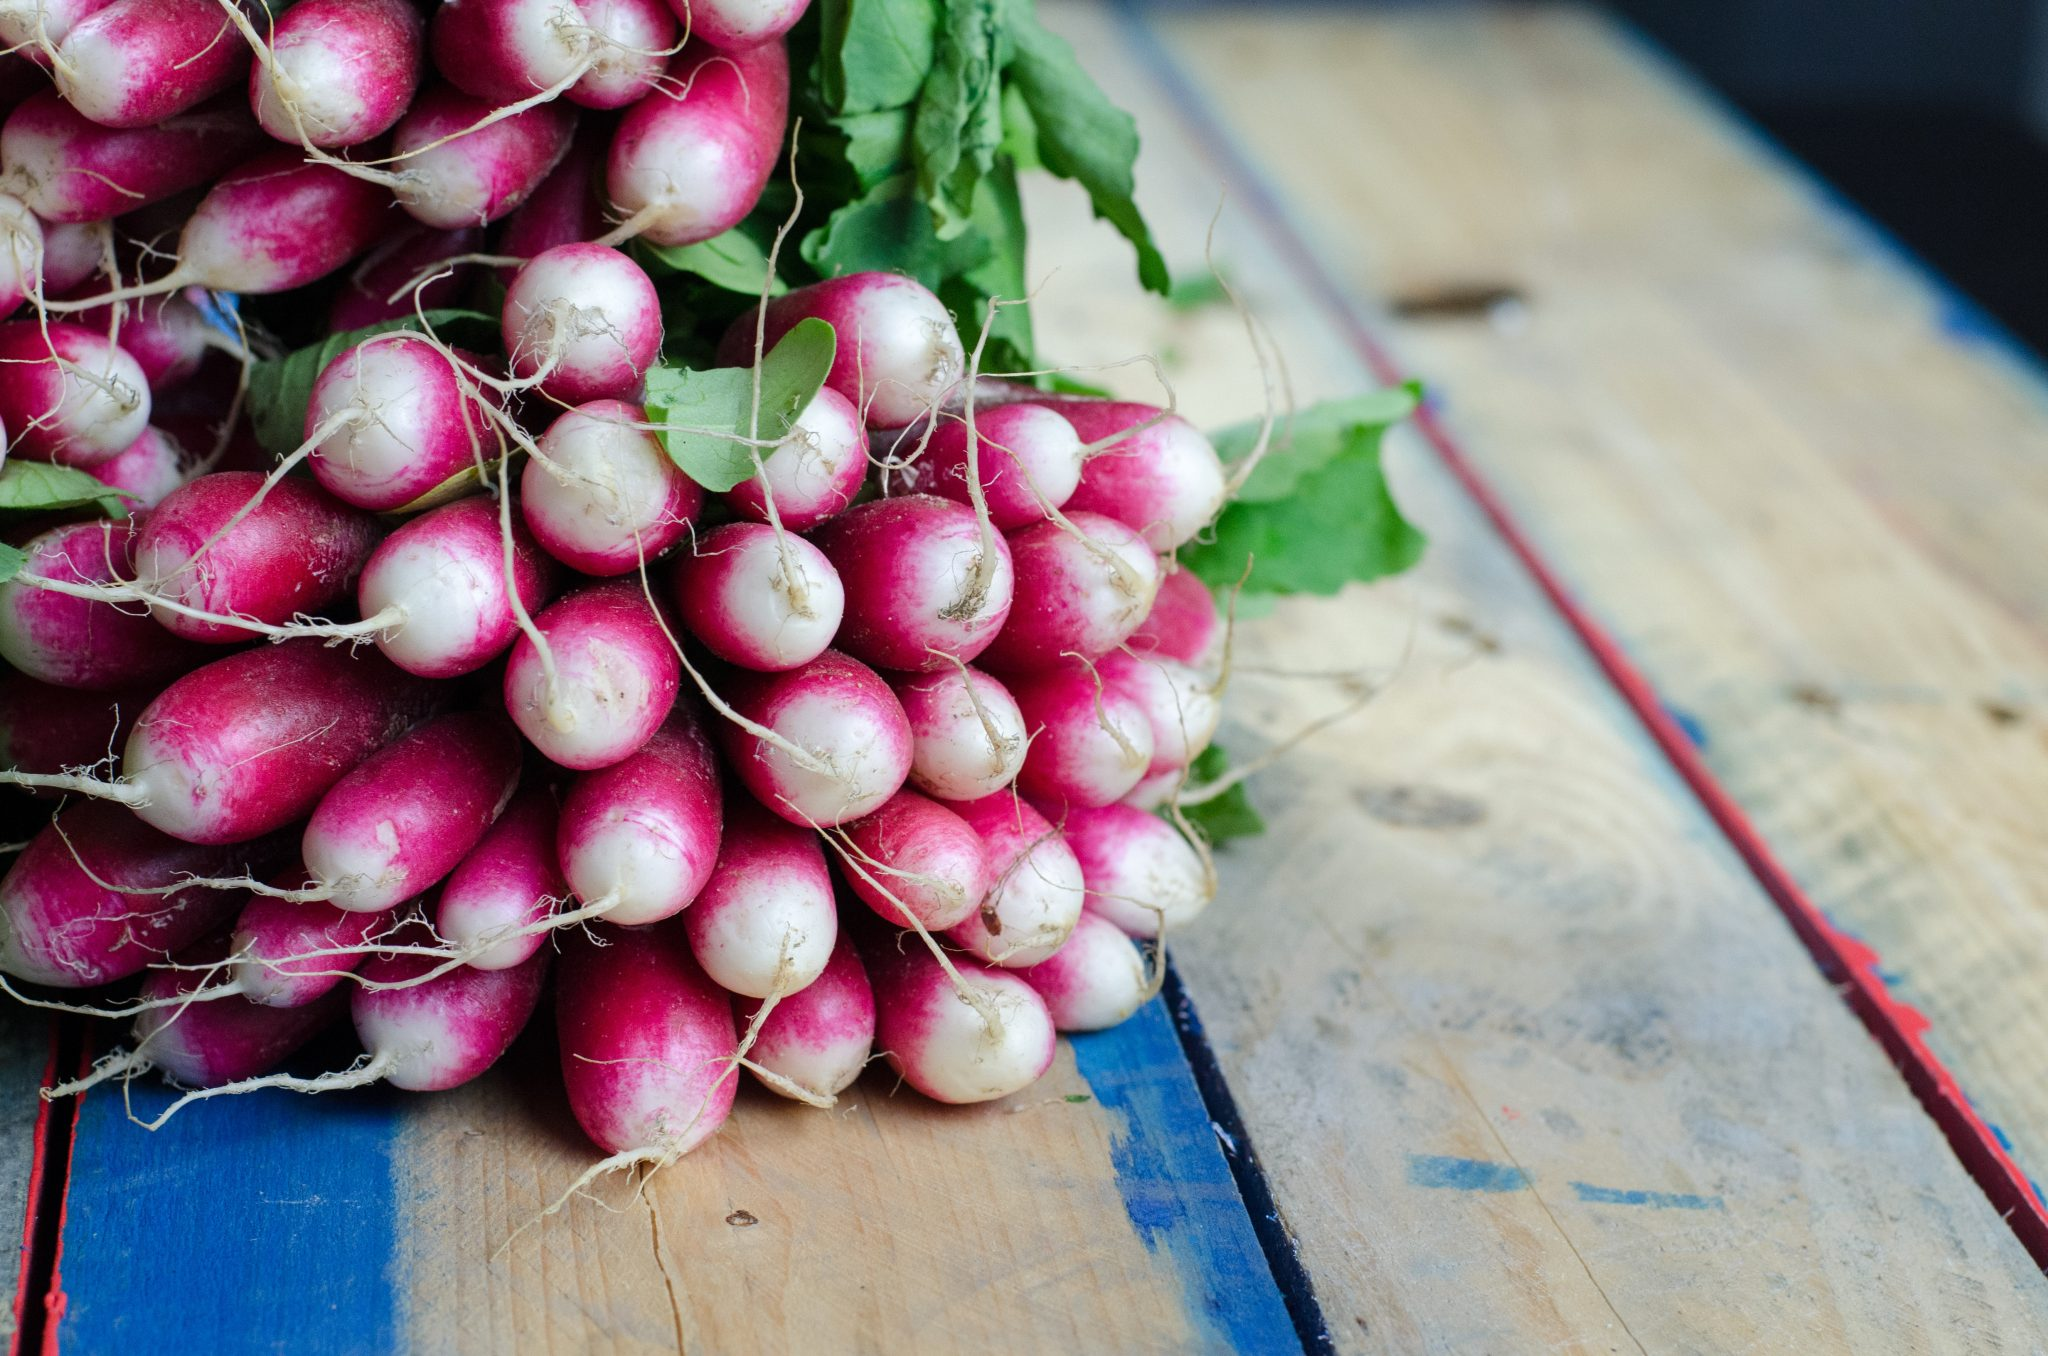 Red and white radishes in a bunch on a table